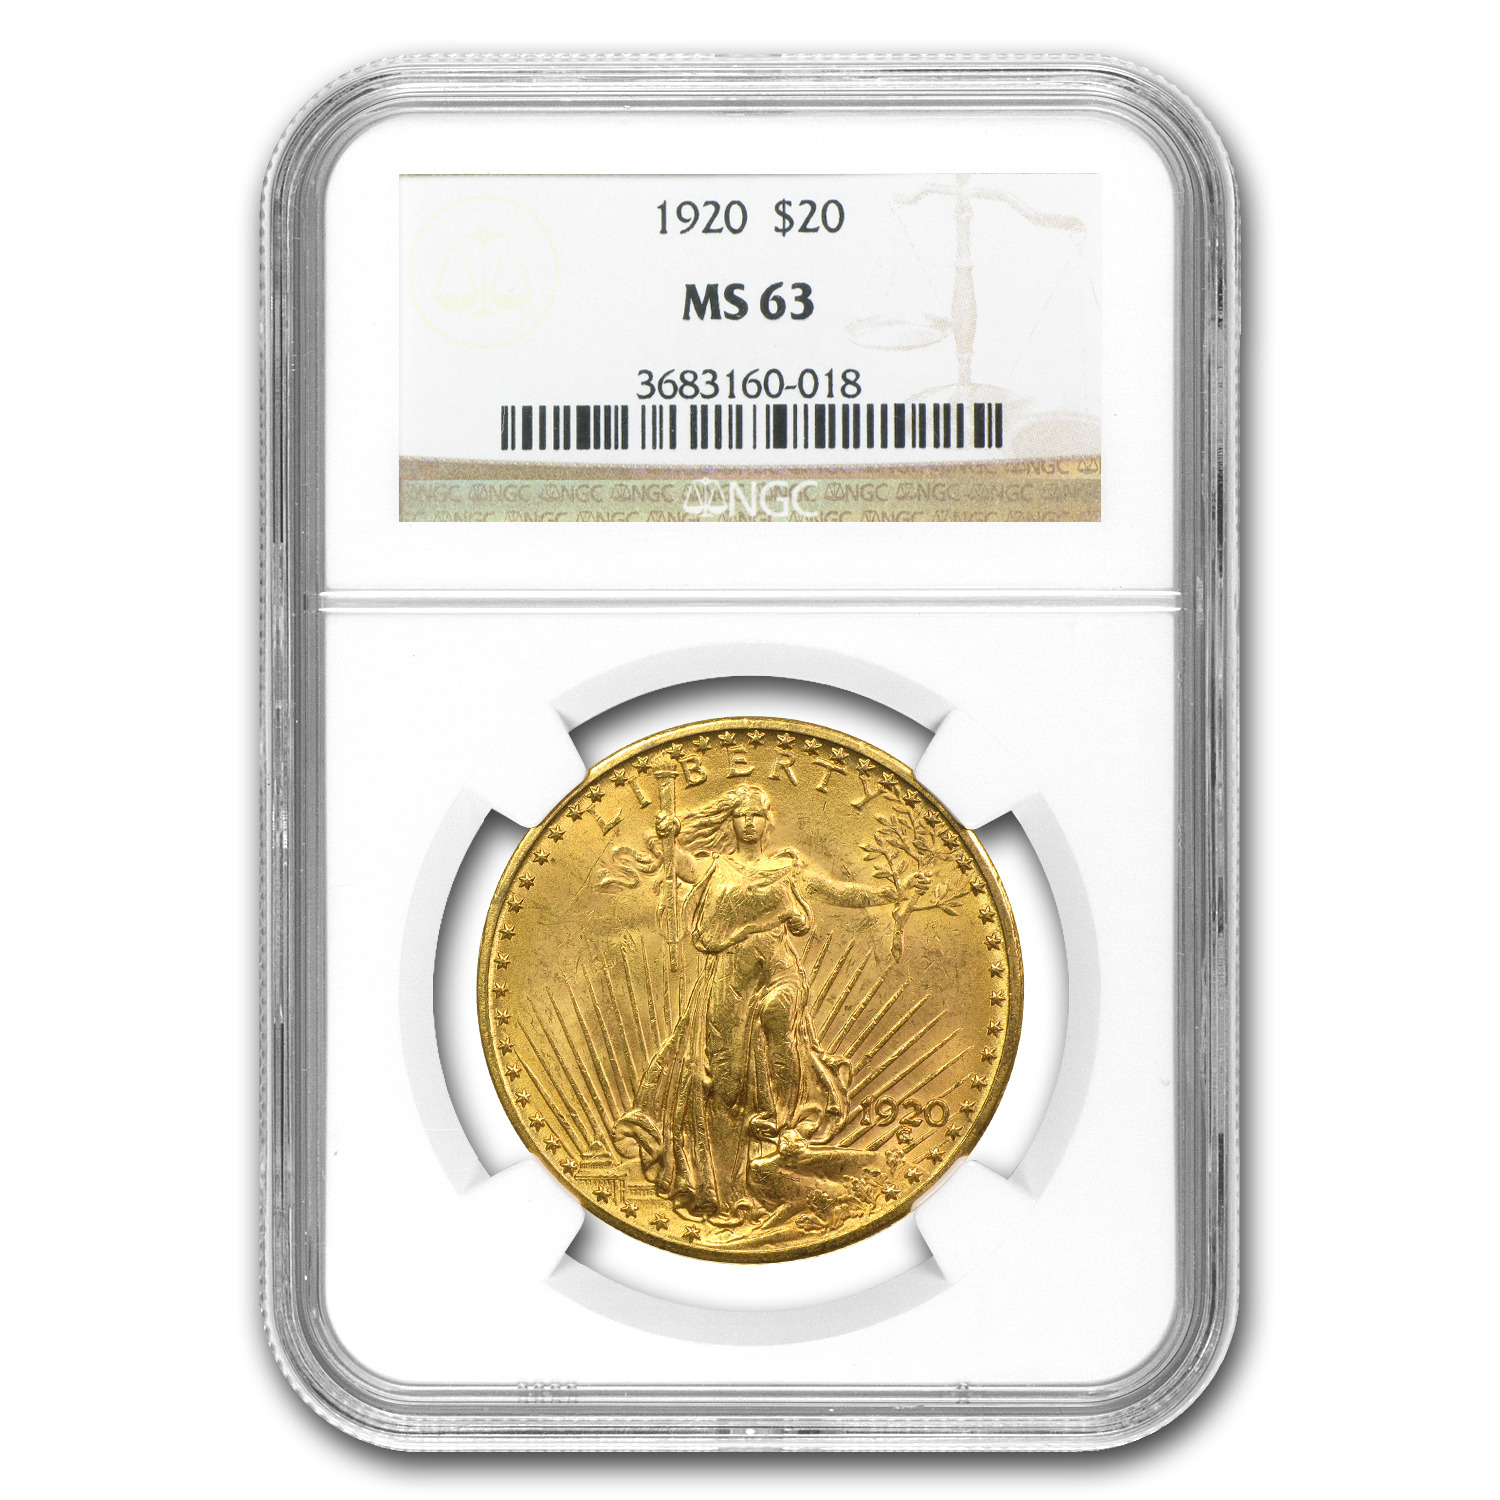 1920 $20 St. Gaudens Gold Double Eagle - MS-63 NGC